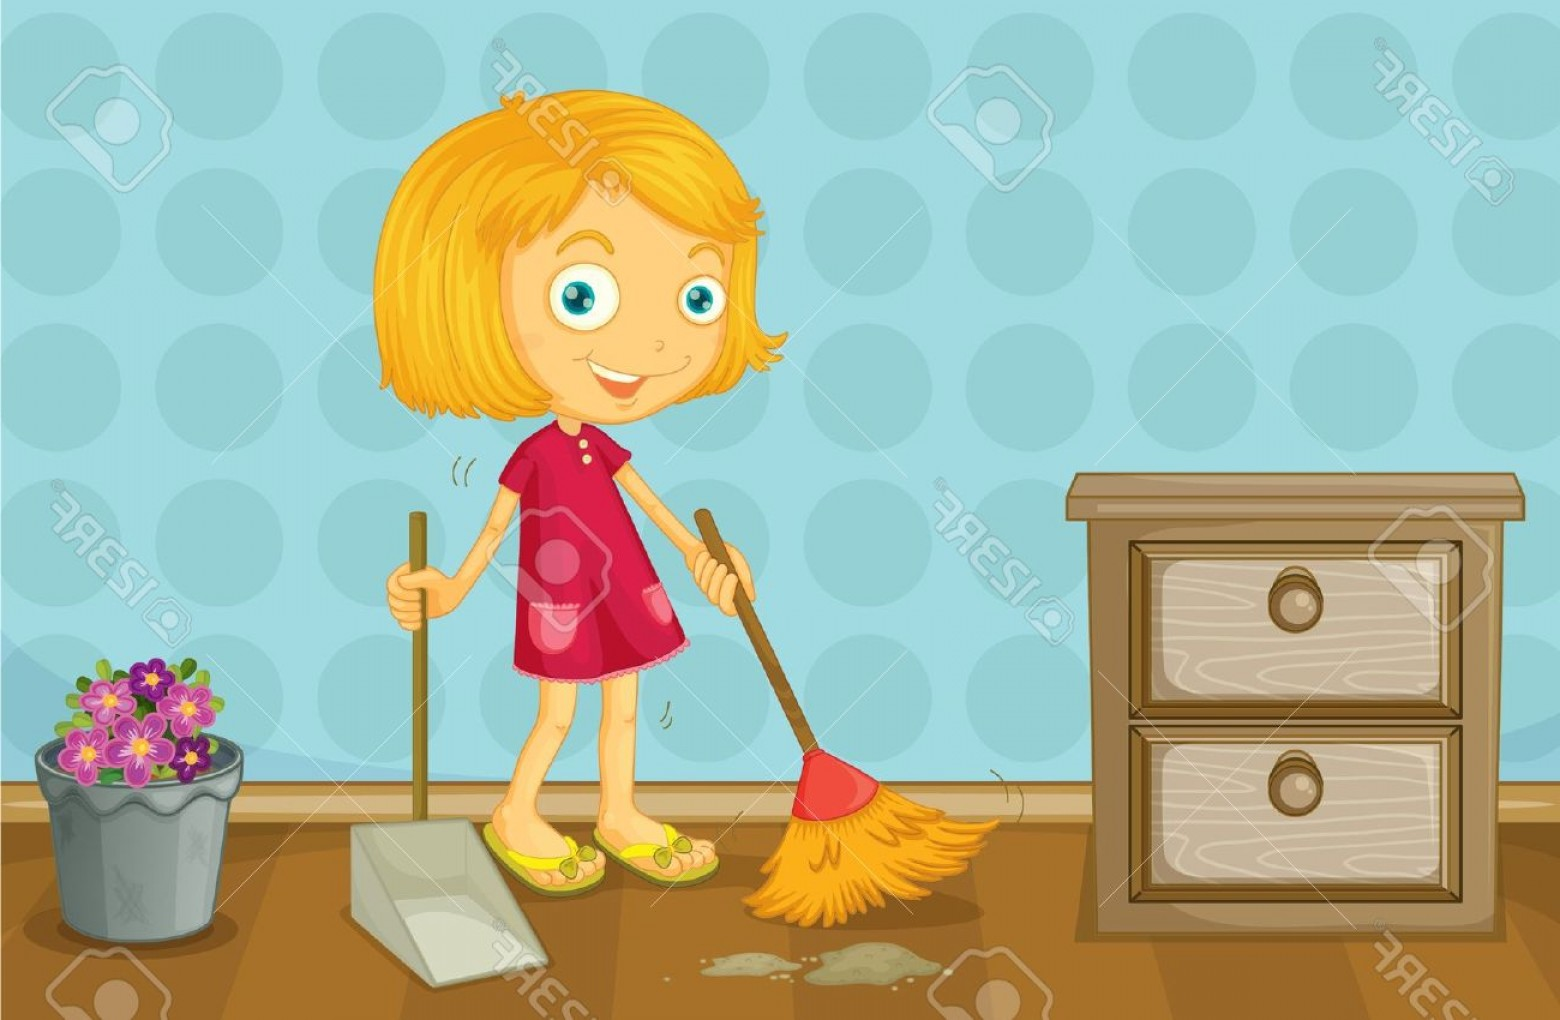 Girl Cleaning Room Clipart.